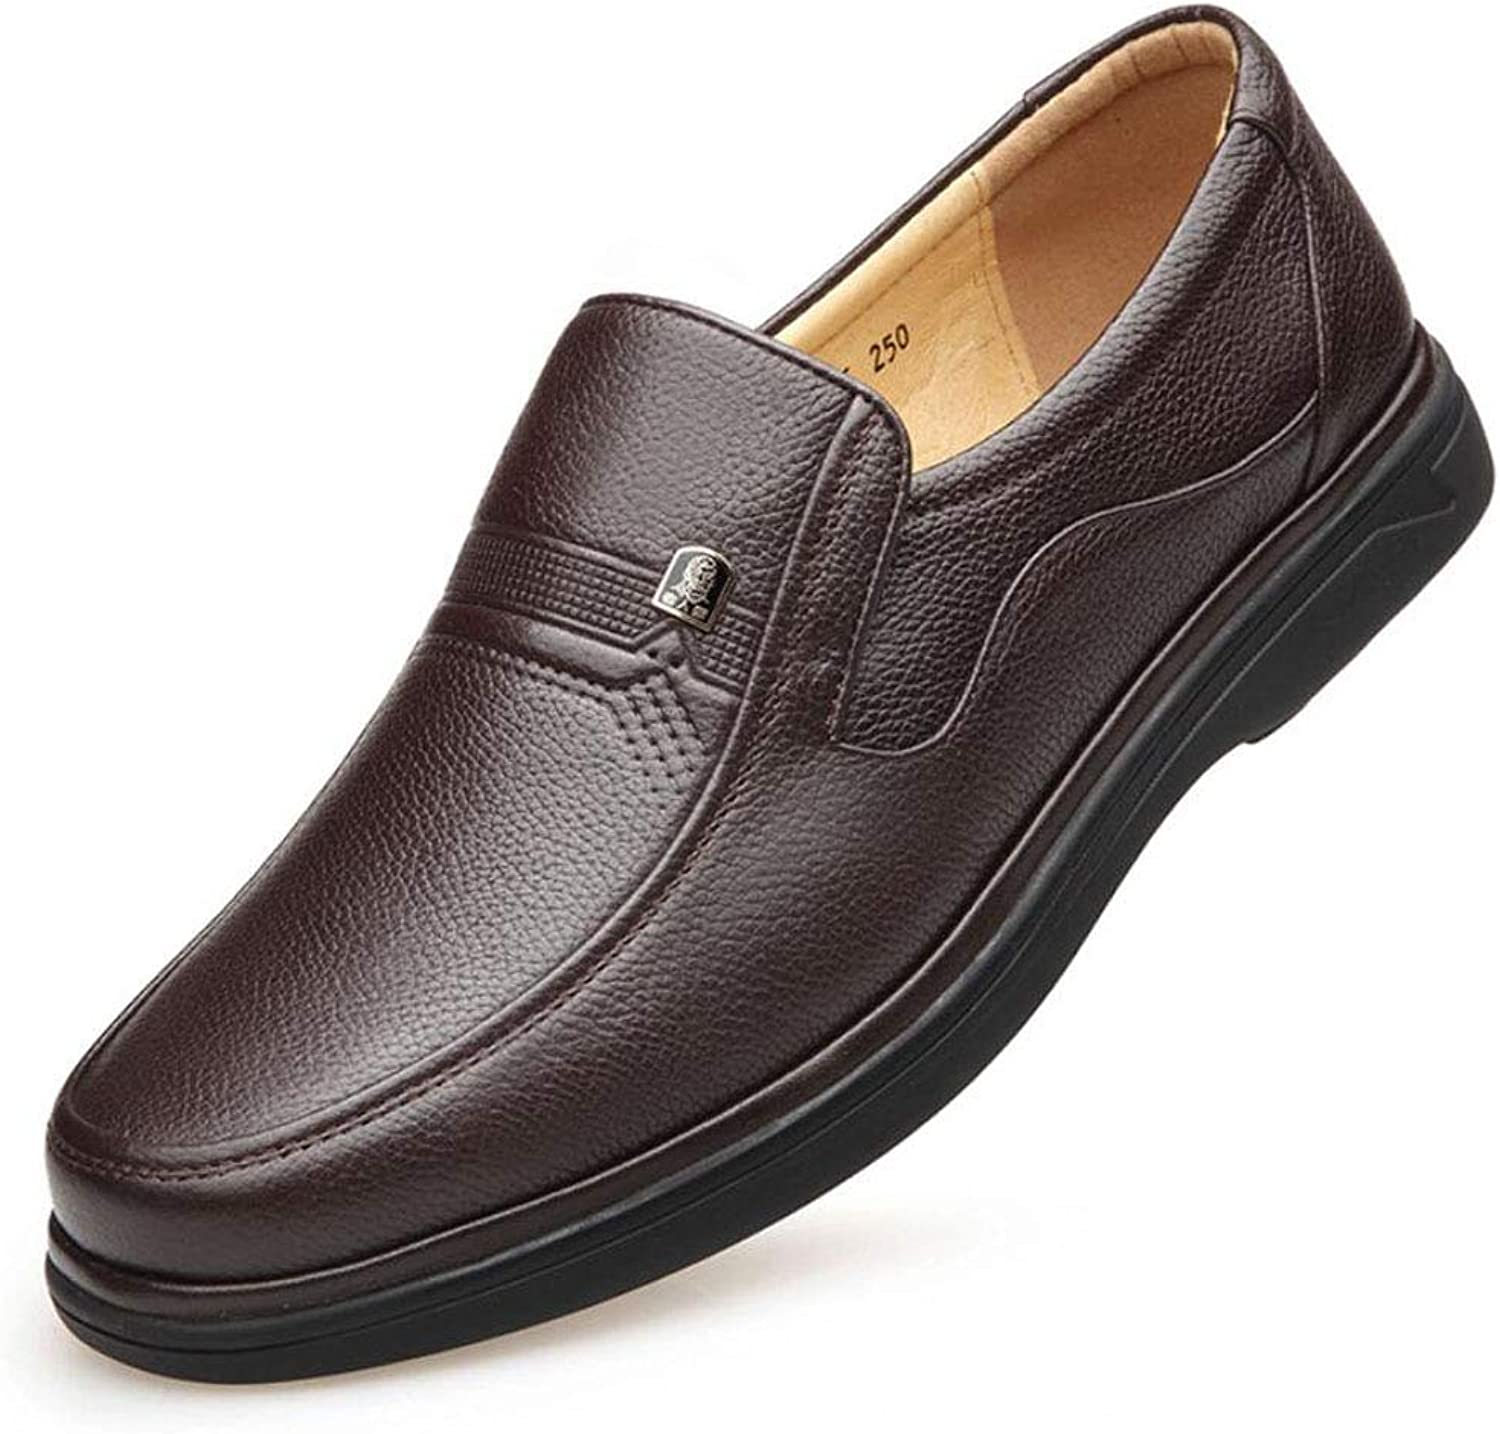 Men's Leather shoes Breathable Leather Oxford shoes Business Casual Men's shoes Brown Dress shoes